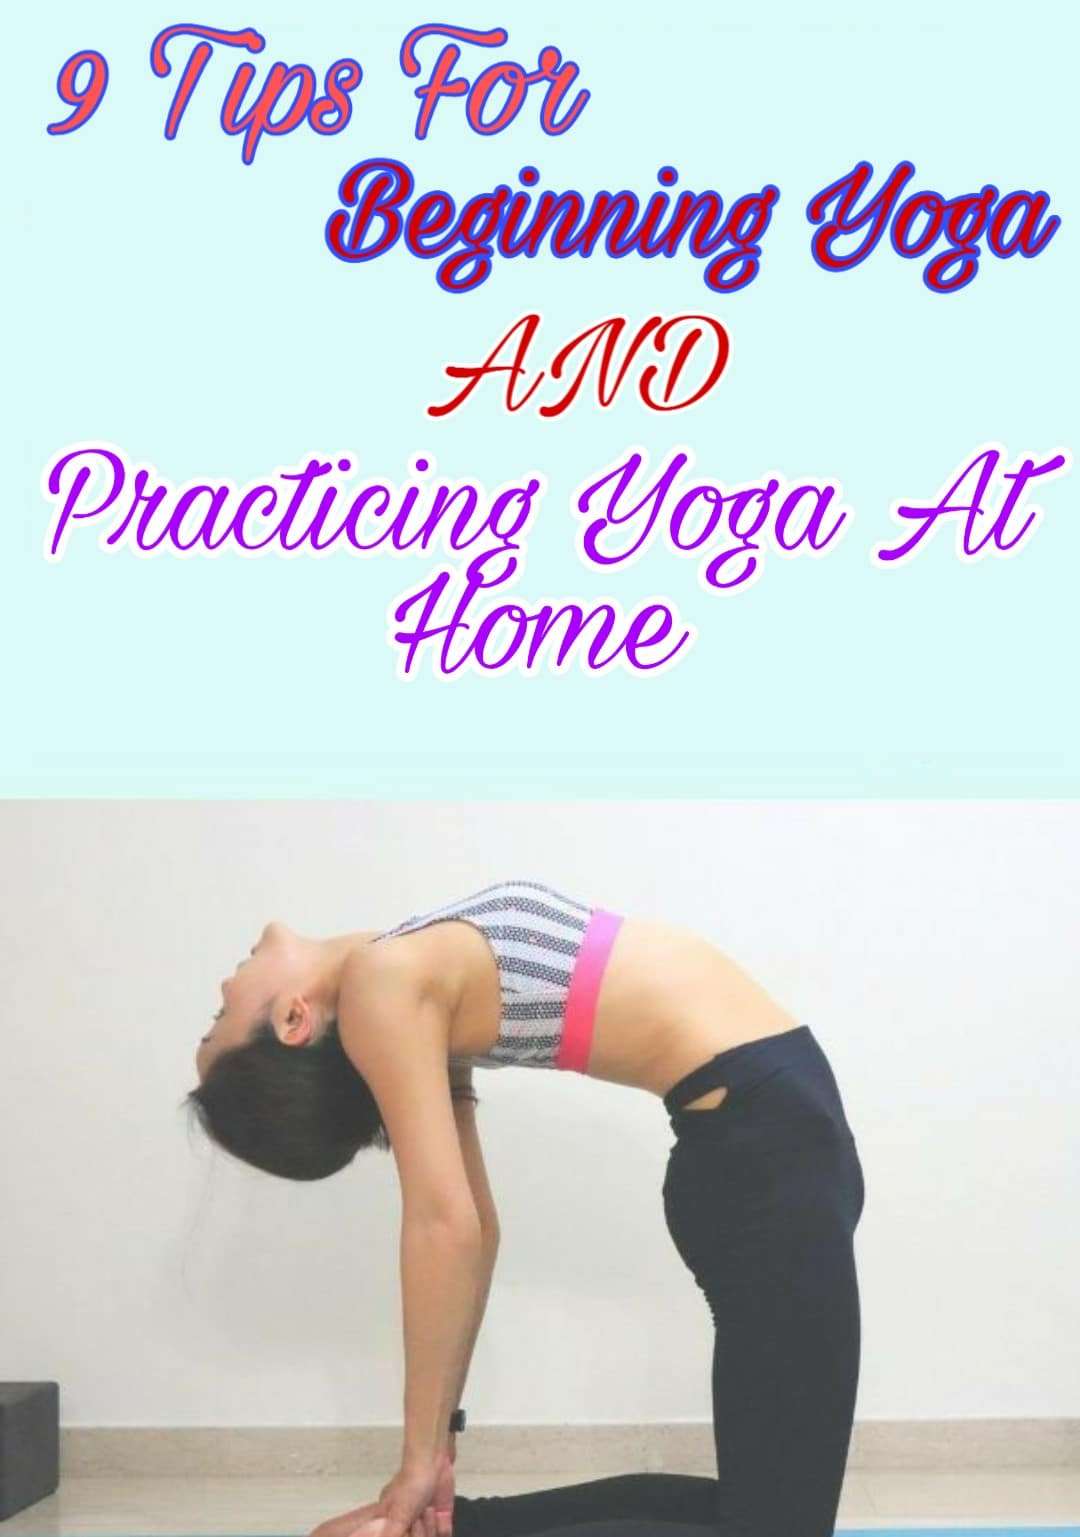 9 Tips For Beginning Yoga Practicing Yoga At Home For Health Tips